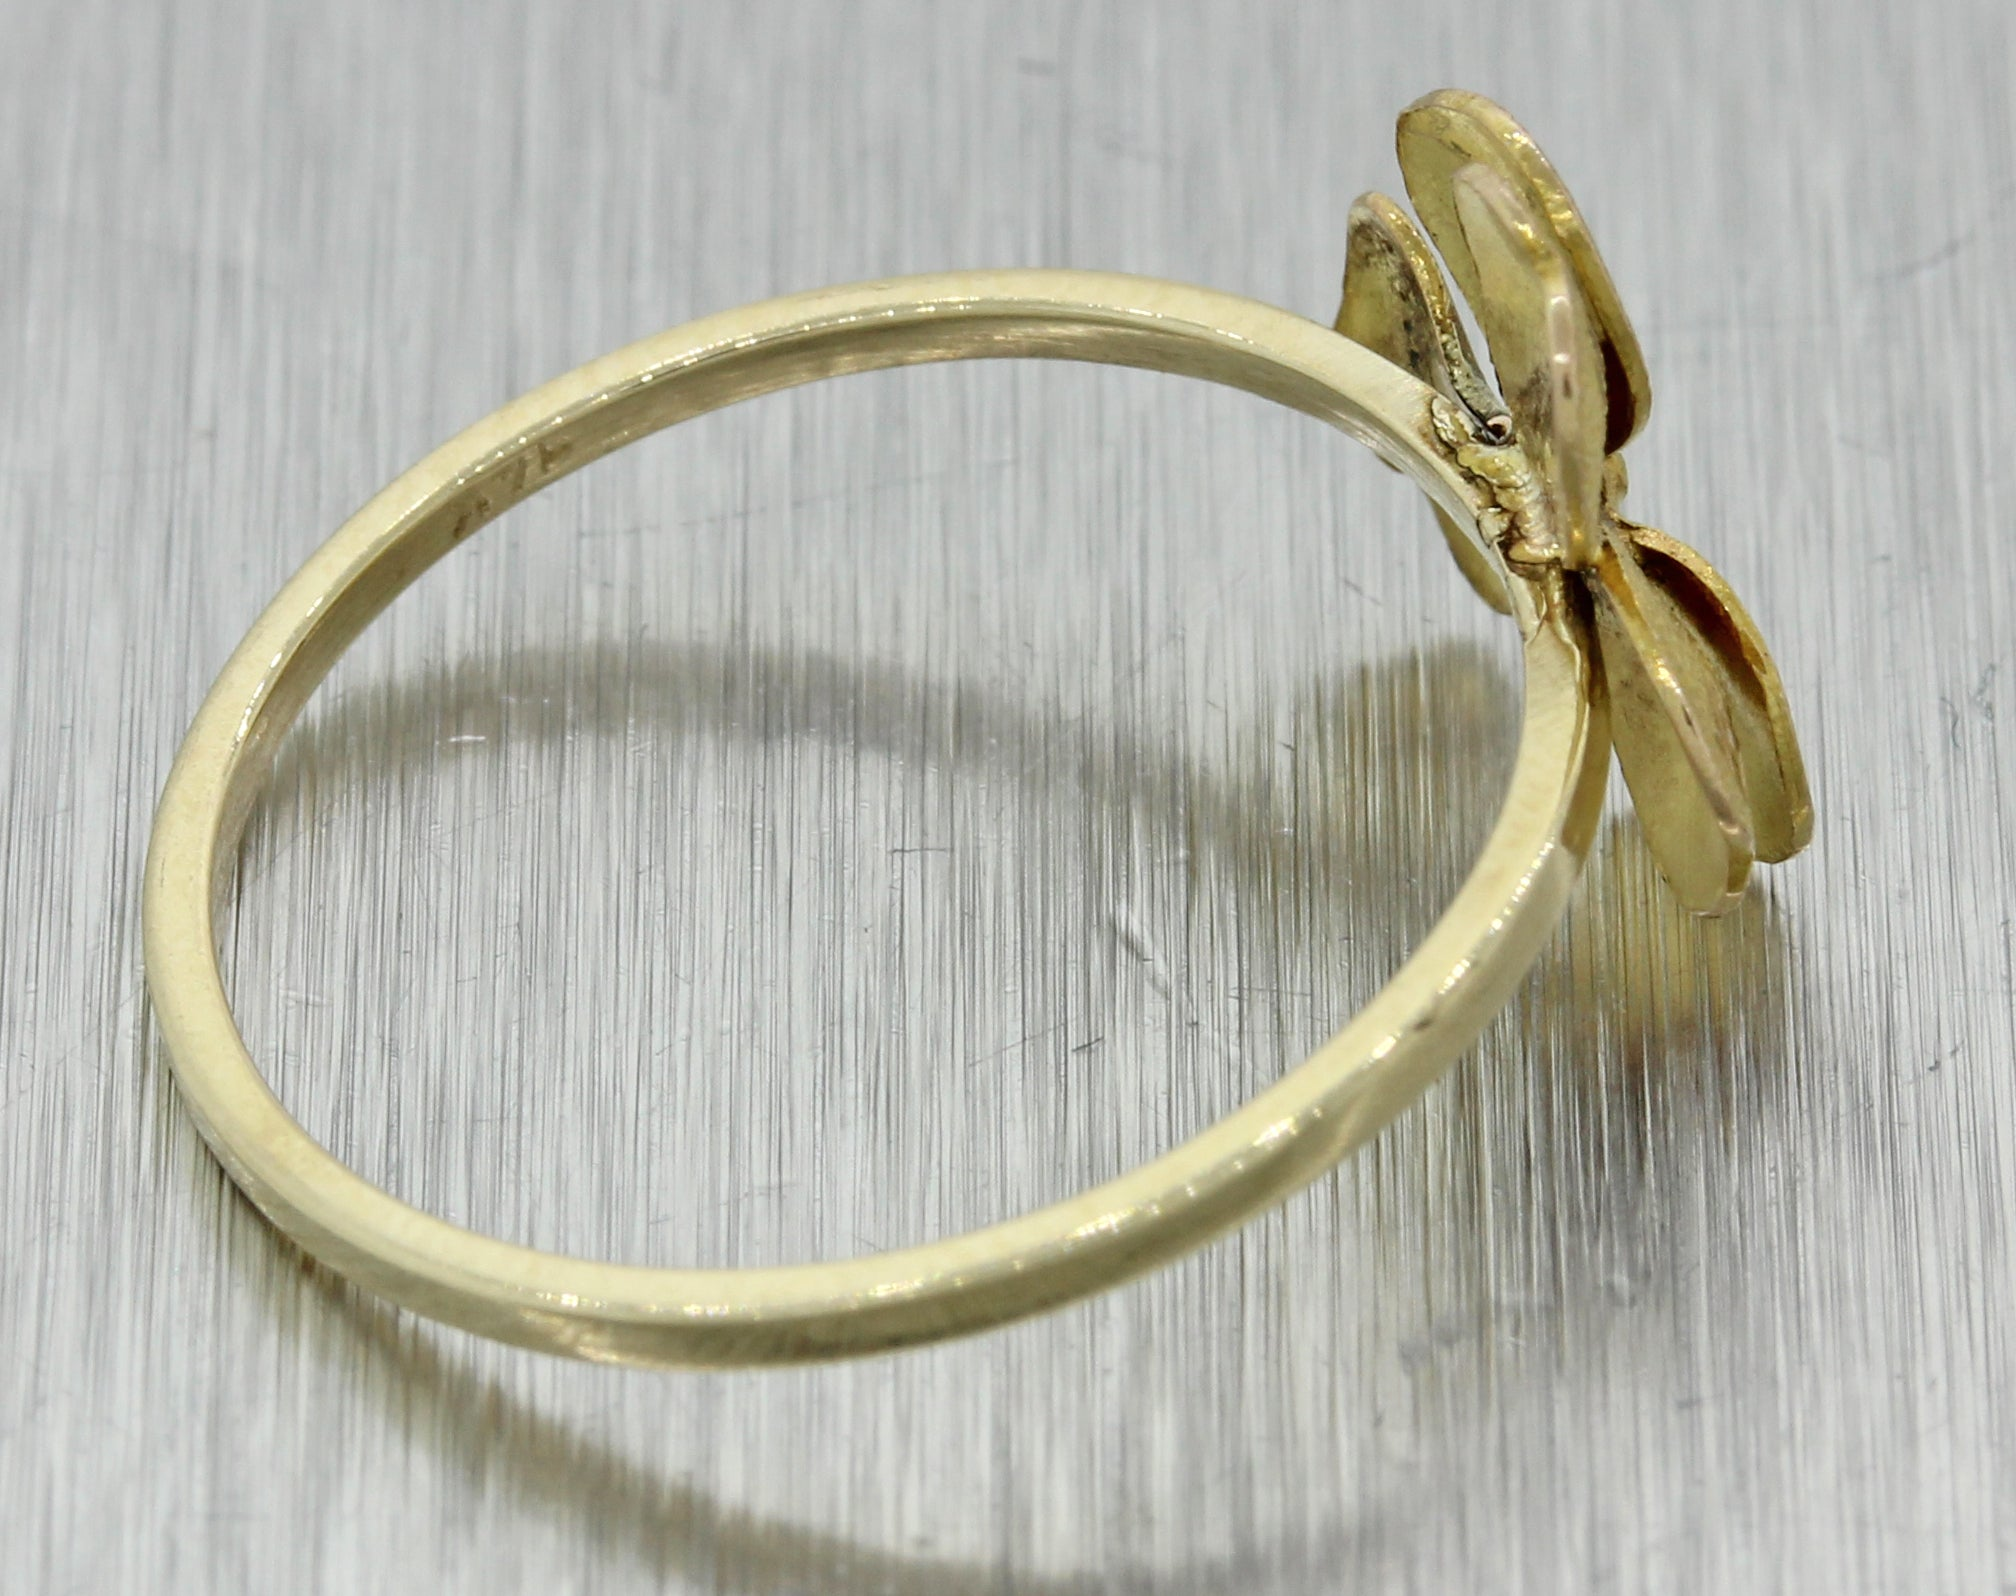 1930s Antique Art Deco 14k Solid Yellow Gold Flower Ring j8